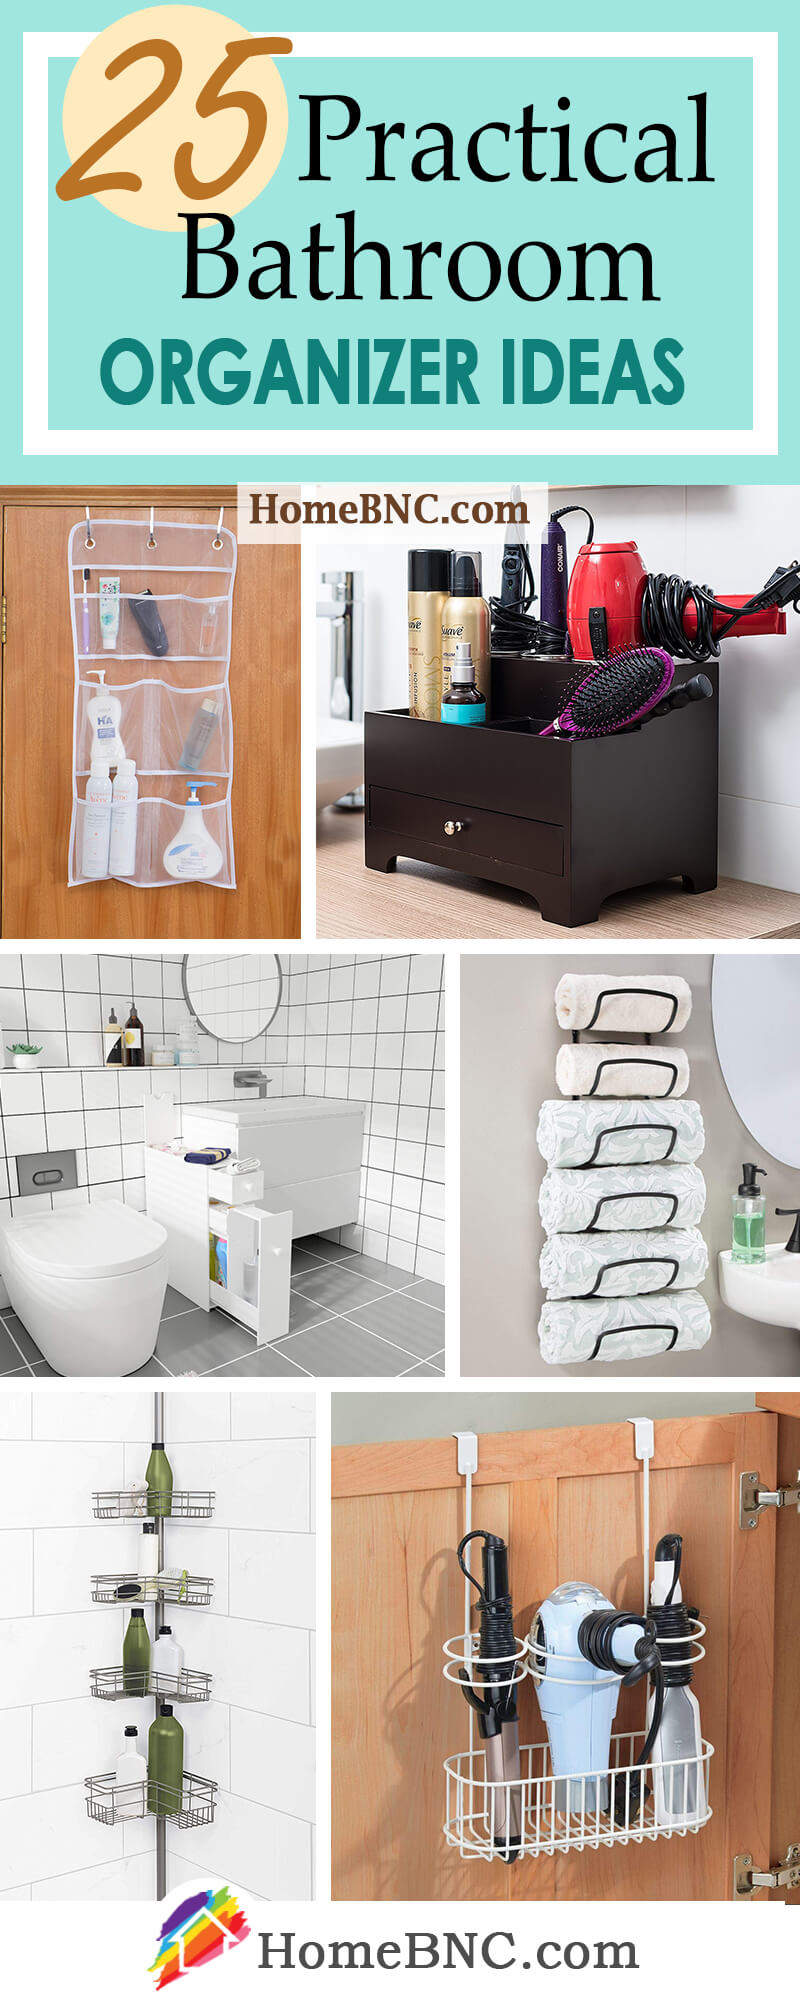 Best Bathroom Organizer Ideas